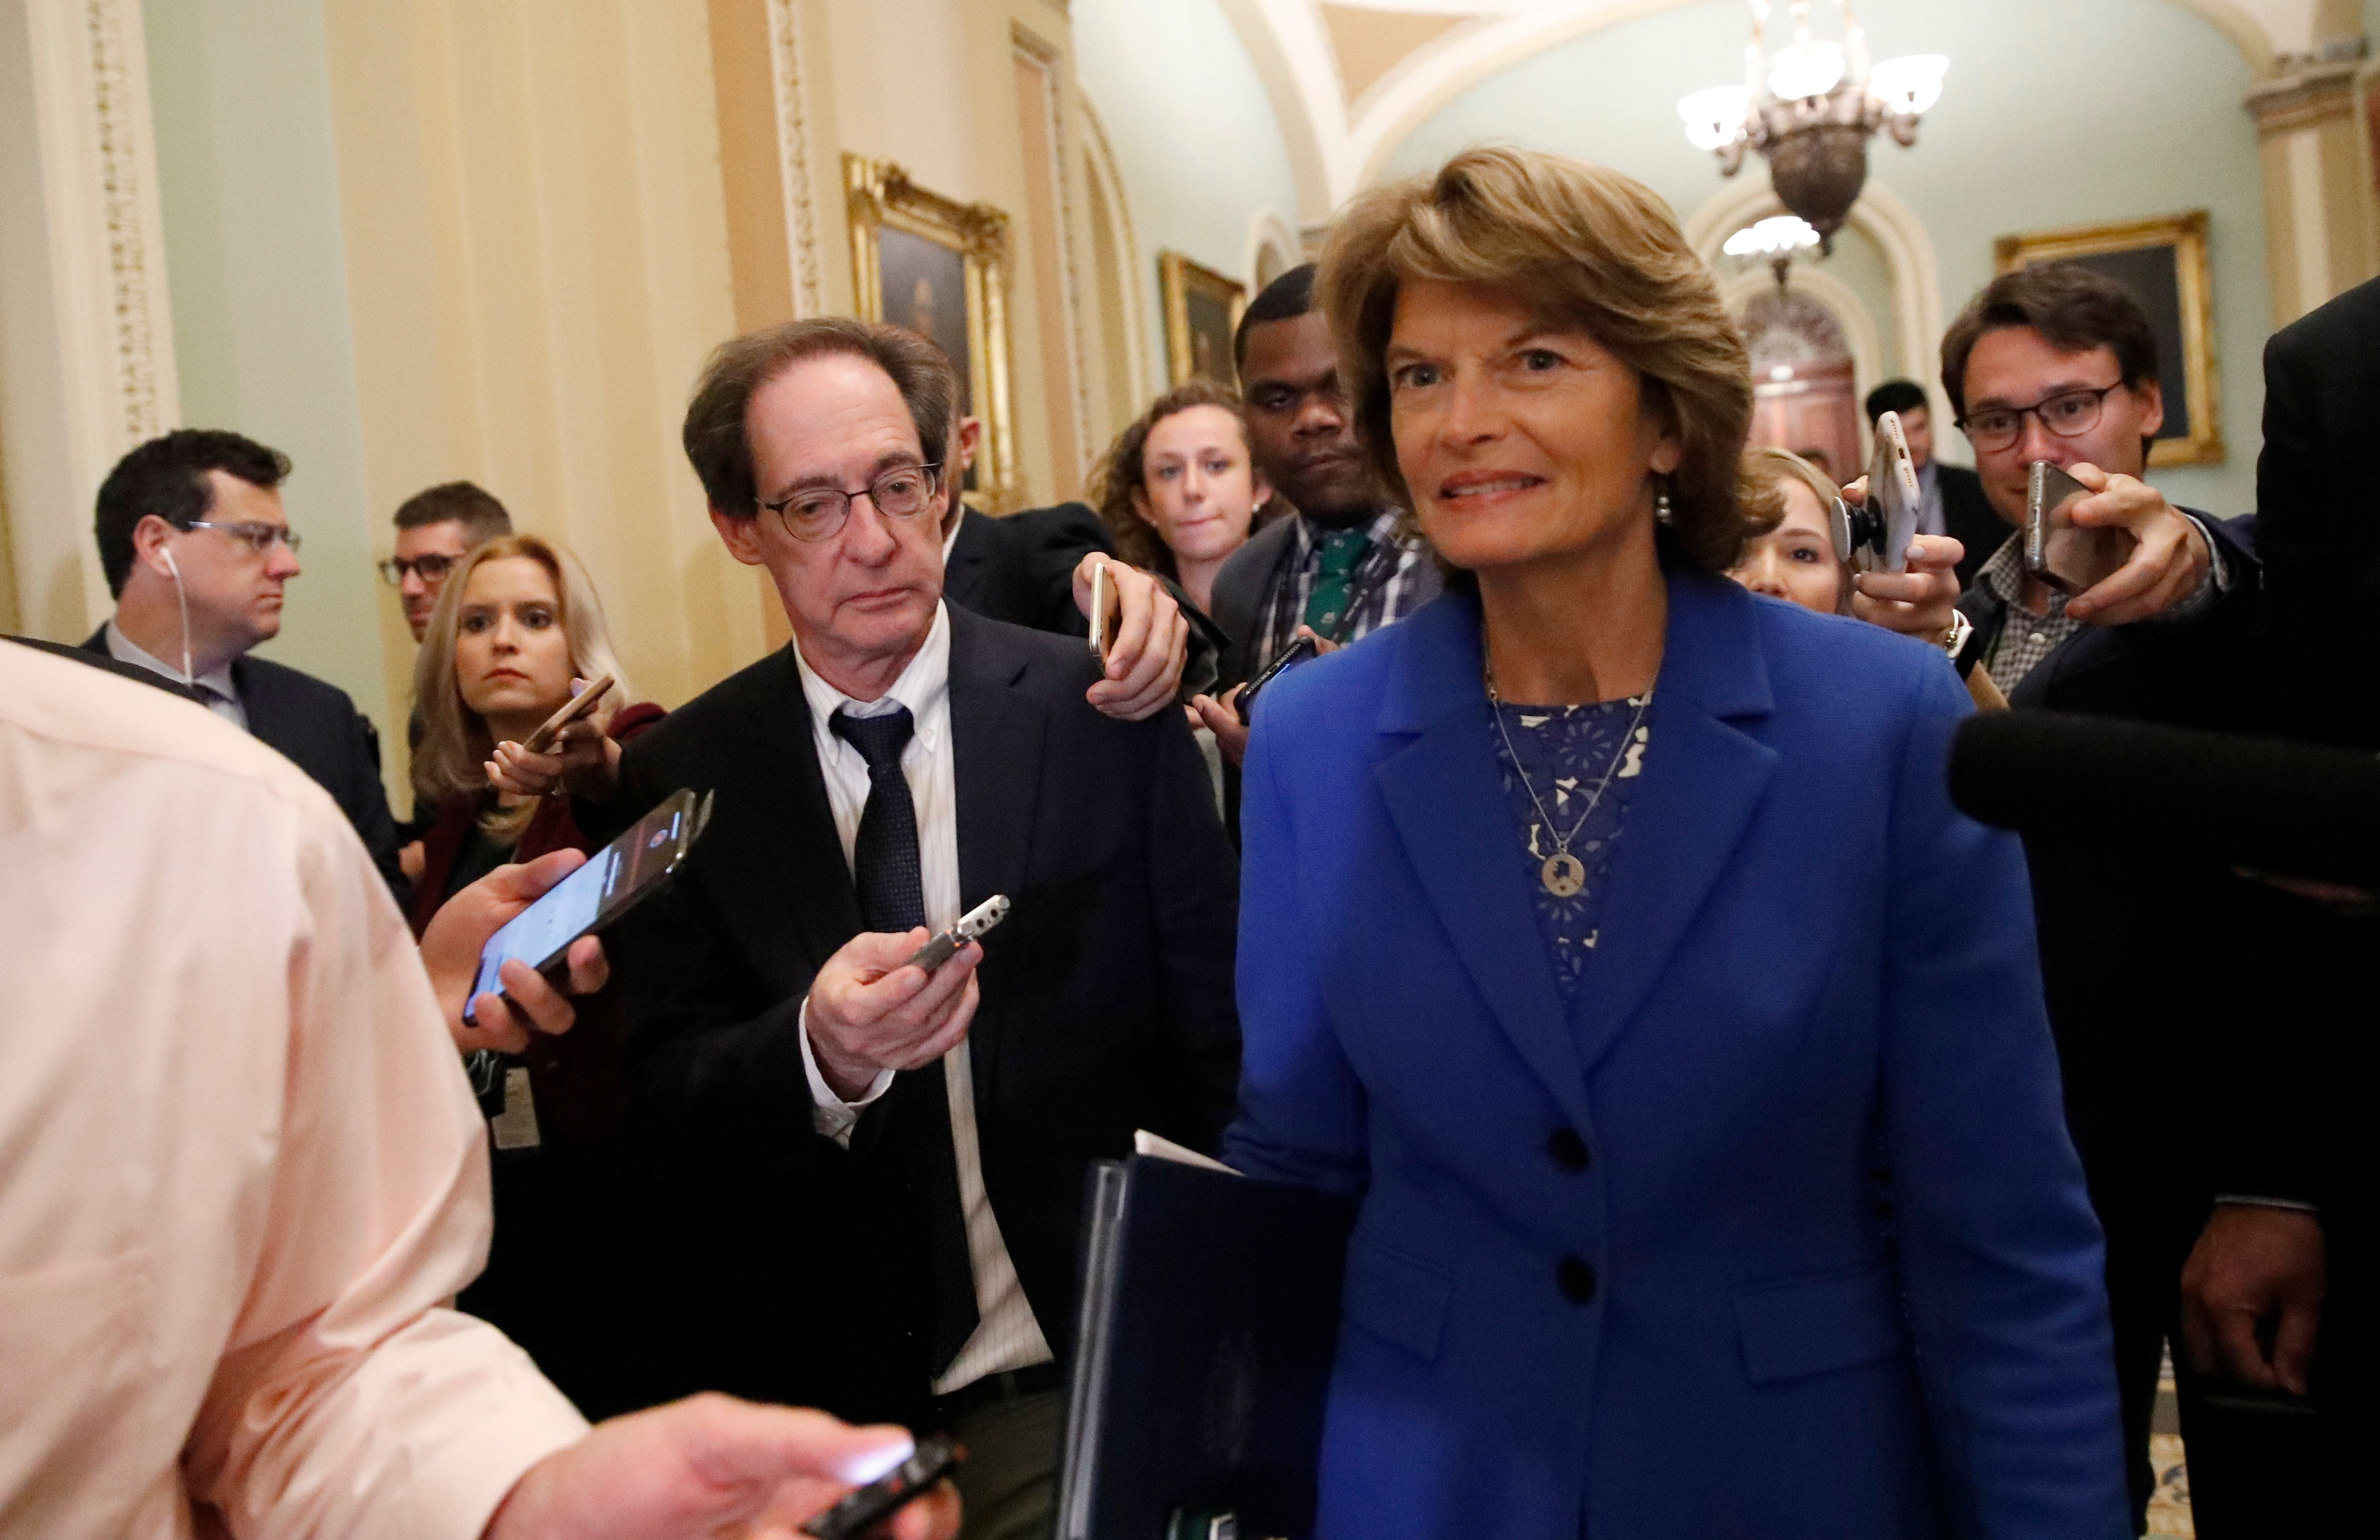 Come January, Sen. Lisa Murkowski will take the lead on Savanna's Act, a bill aimed at stemming violence directed at Native w